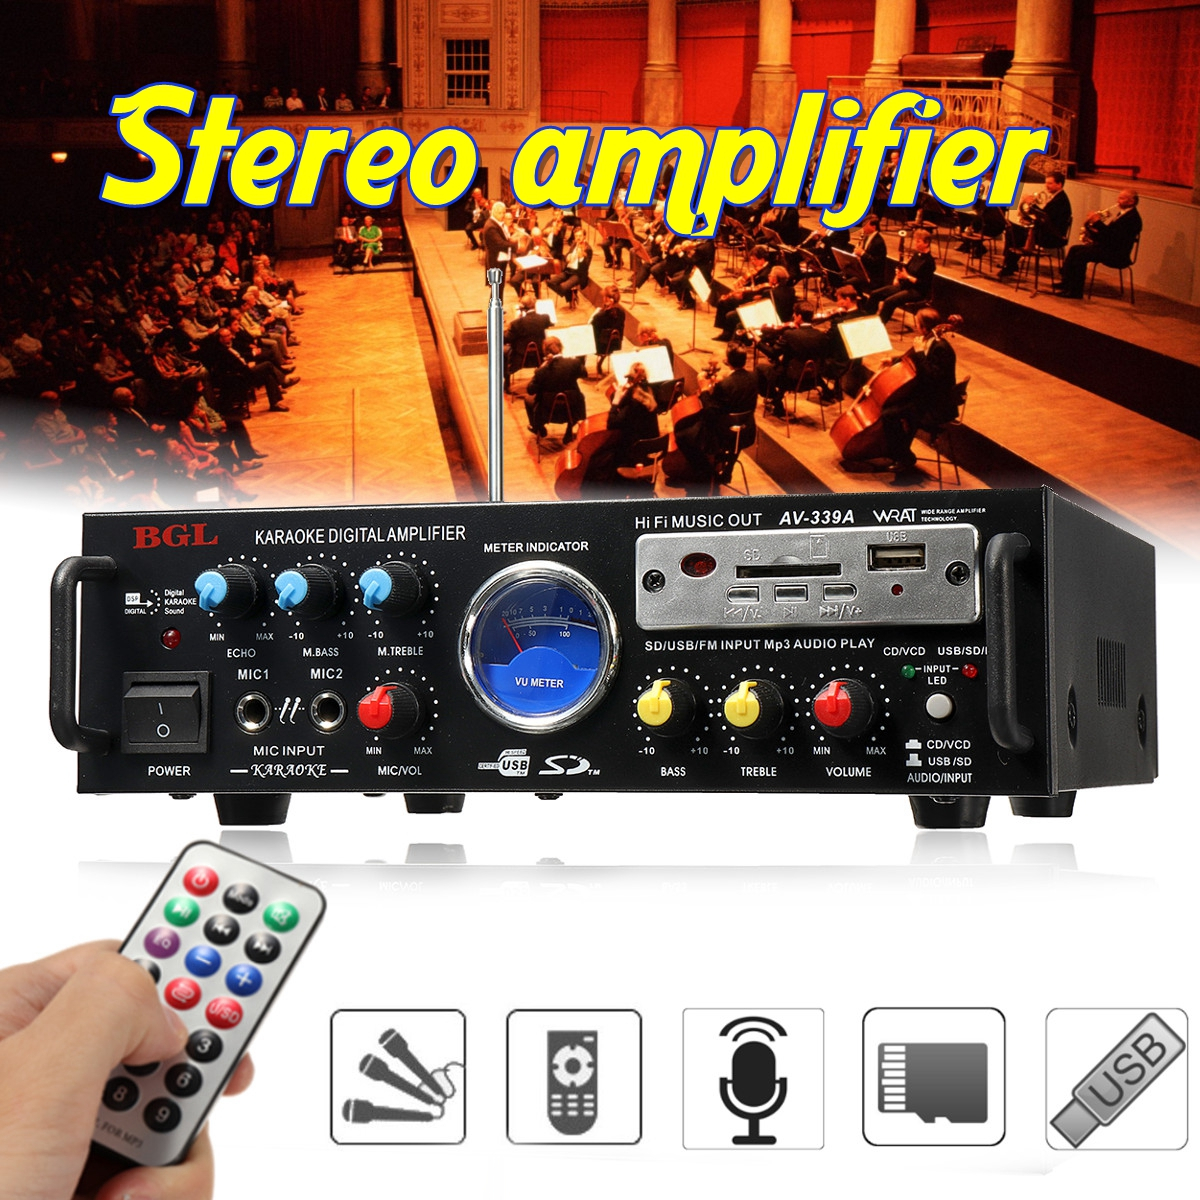 80W 12V/220V 50Hz 5.1 channel Equalizer Stereo Power Amplifier Support SD card / TF card / U disk Home Theater Amplifiers Audio 3800w 4 channel equalizer home stereo power amplifier usb car amplifier home theater amplifiers audio